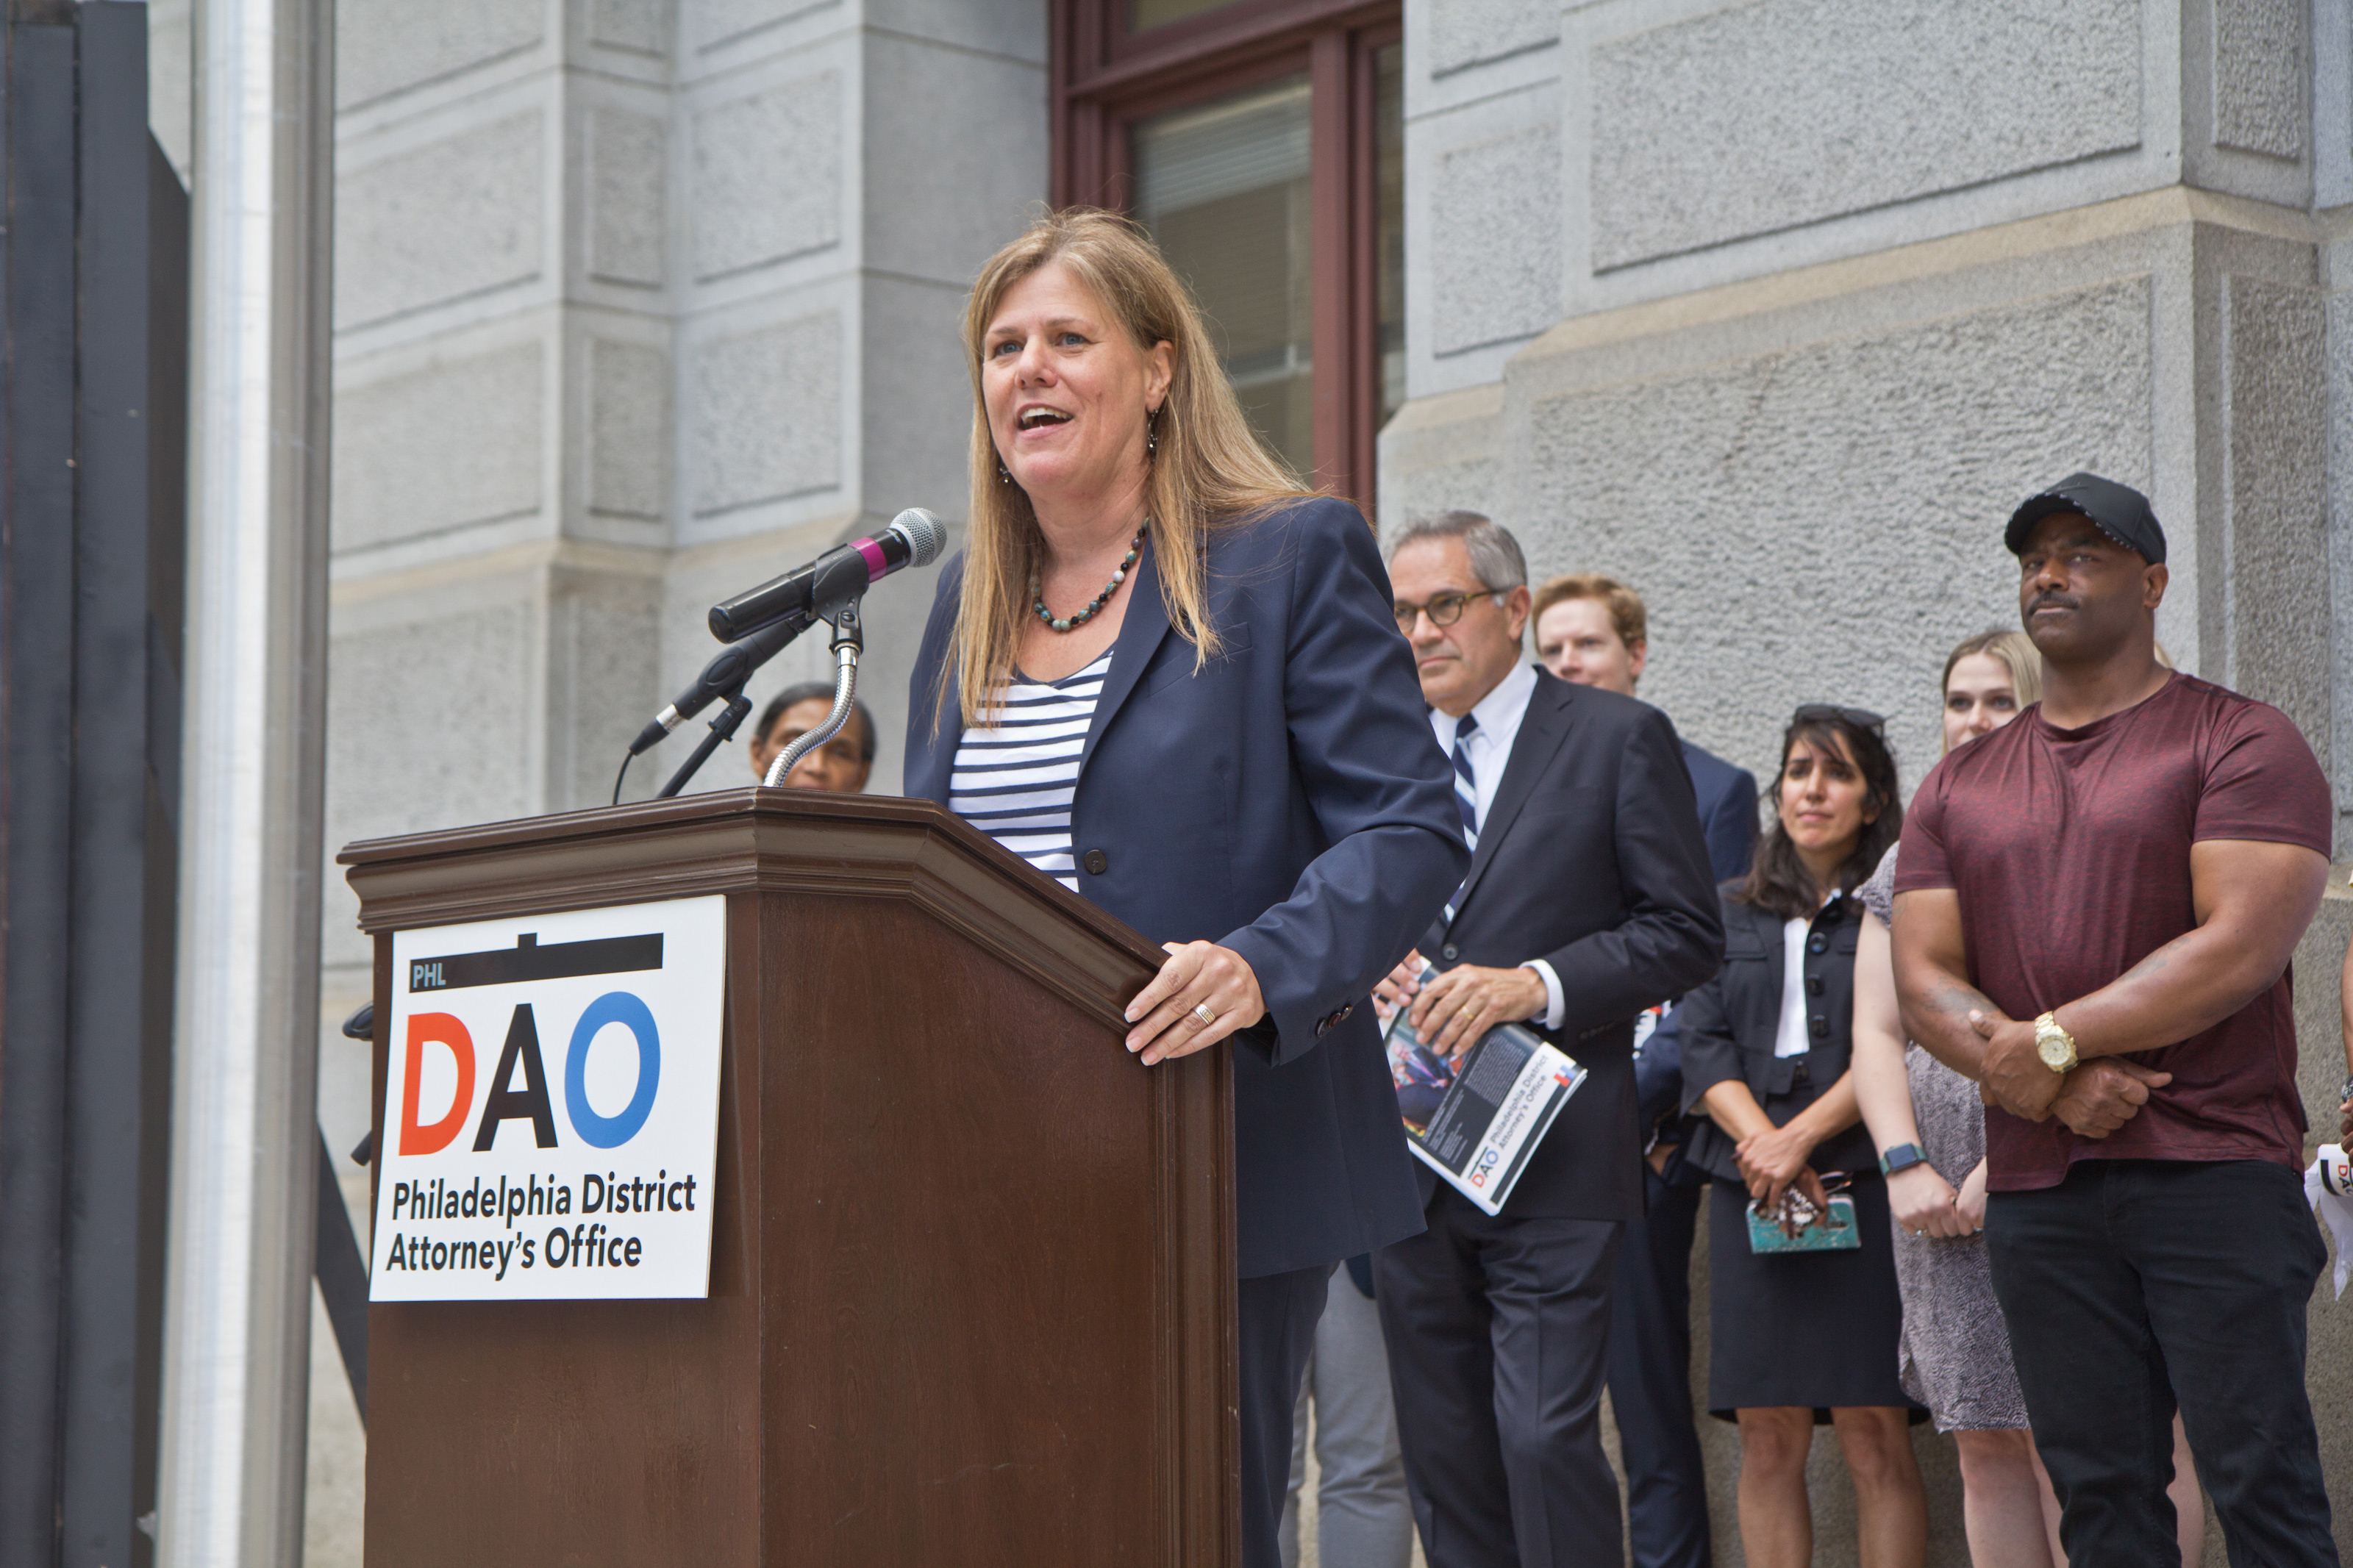 A white woman speaks at a podium, which has a sign attached reading